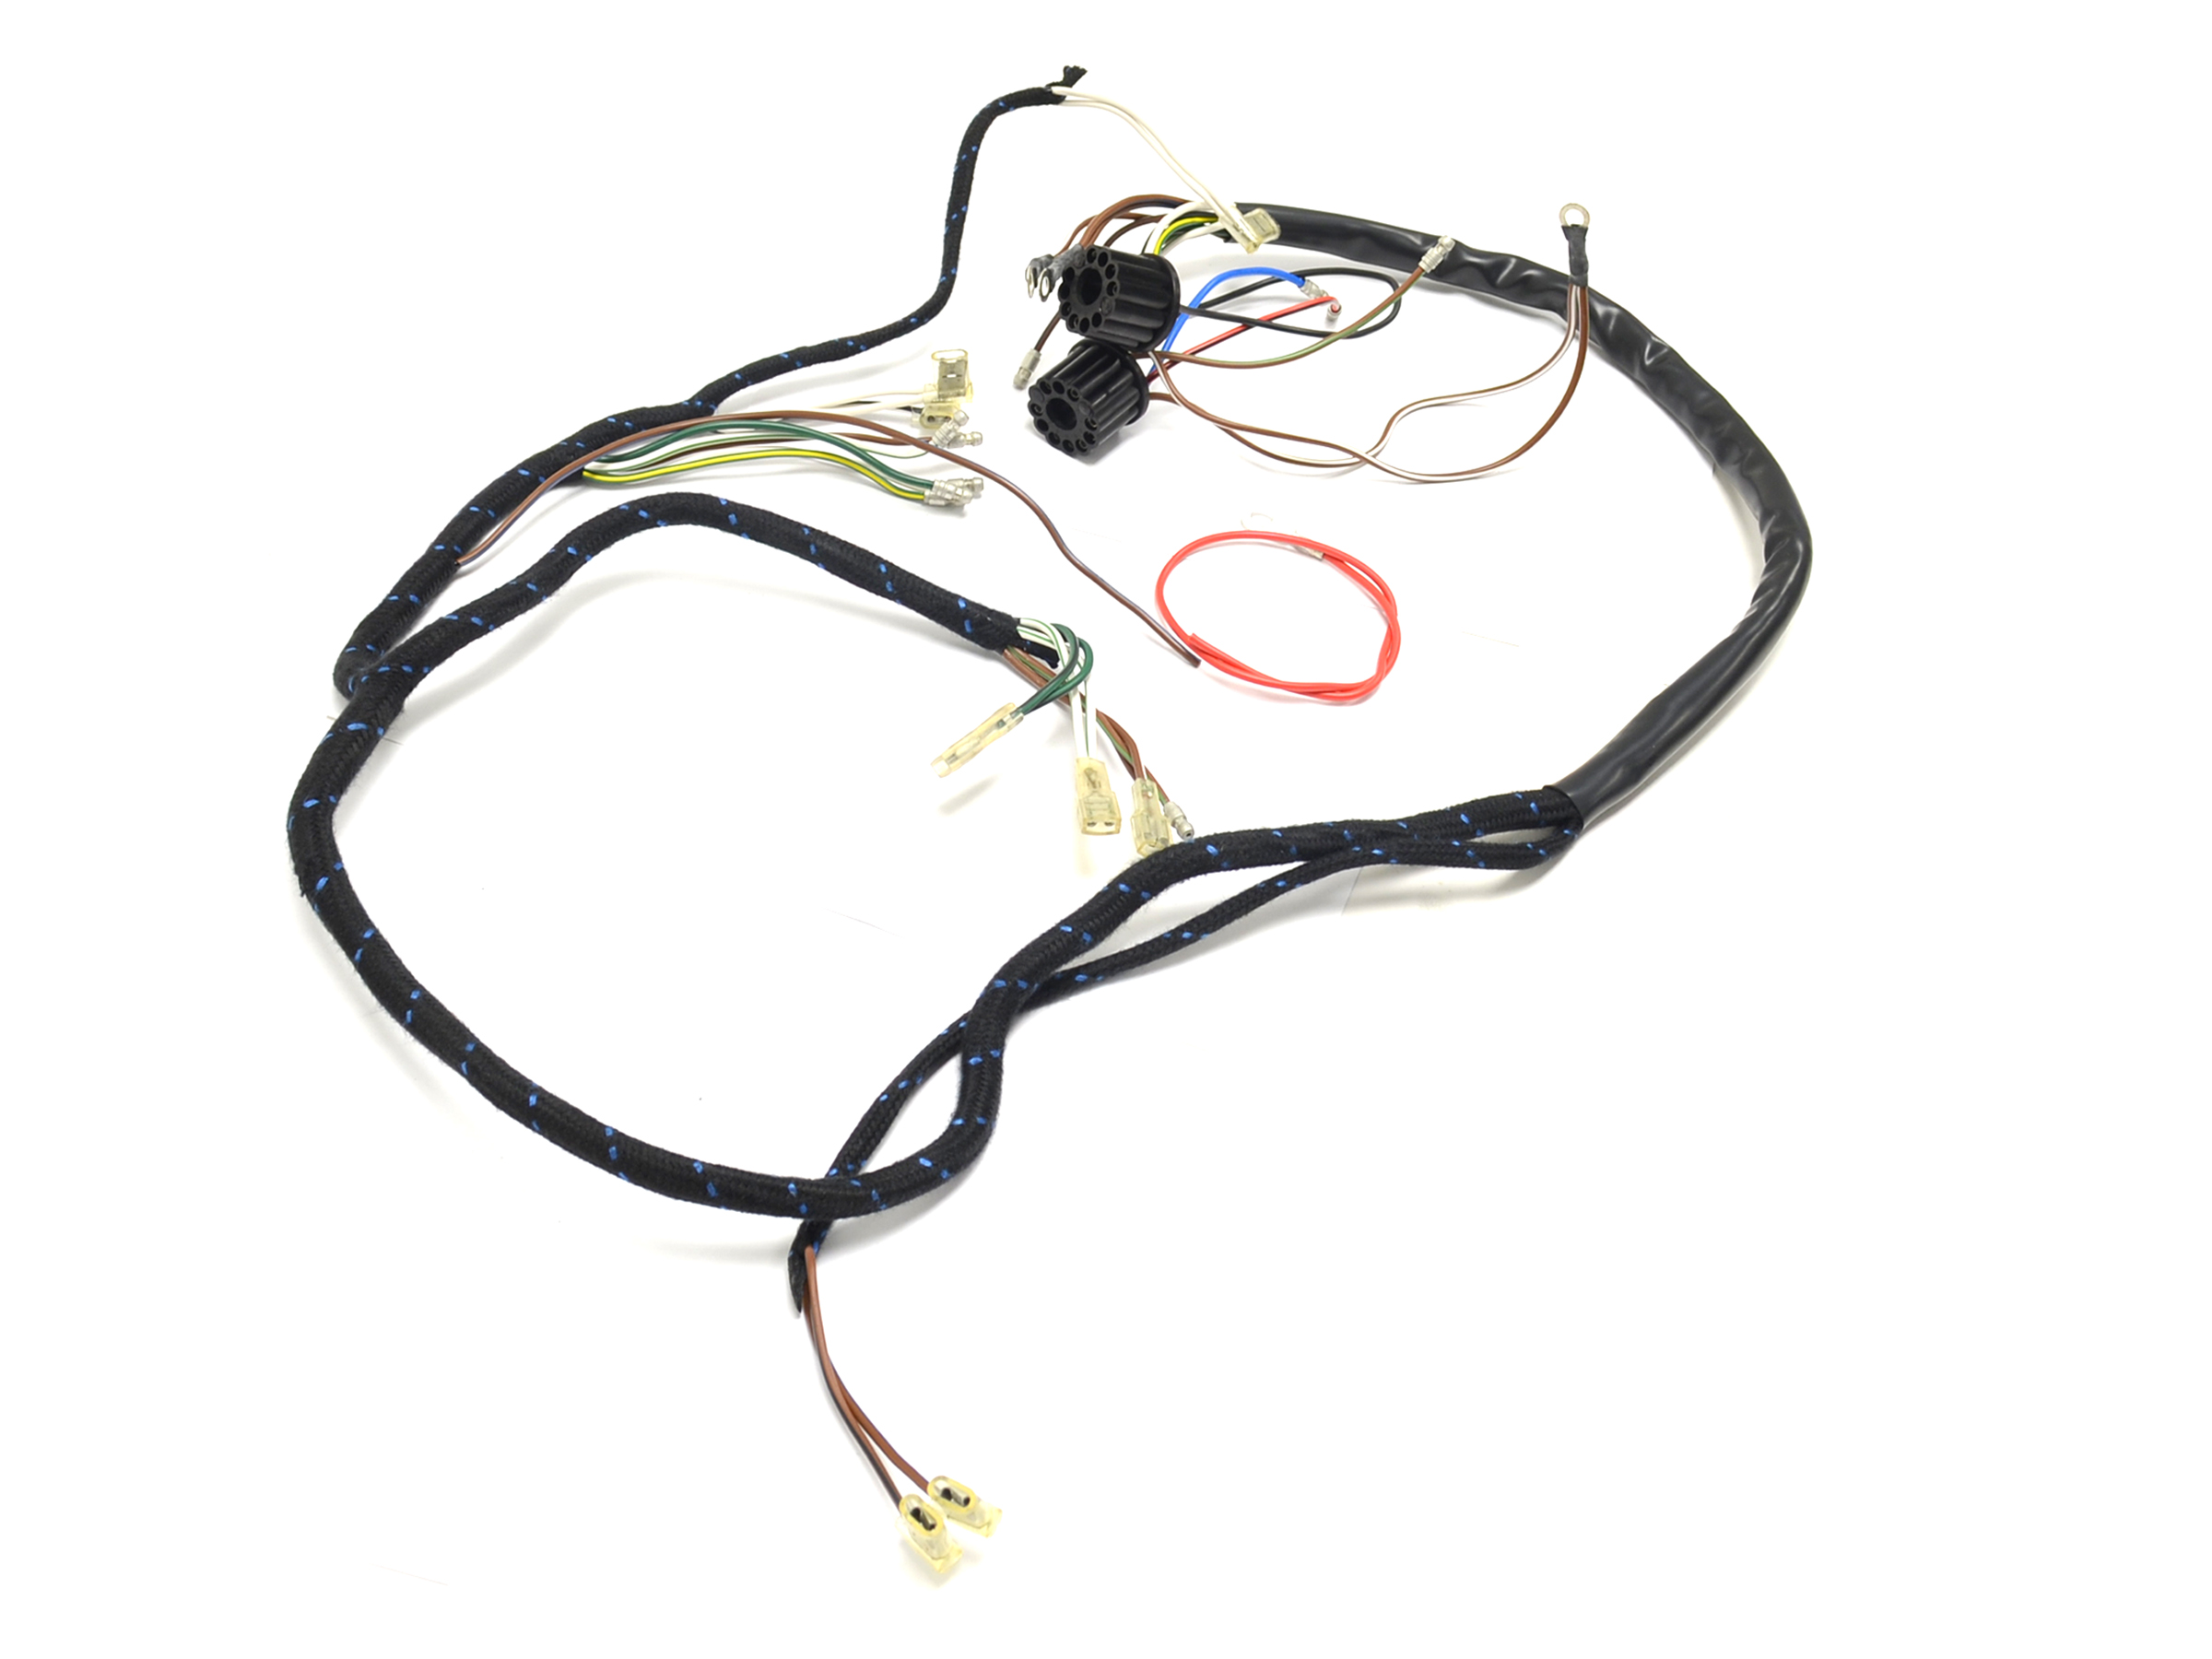 Bsa 65 A65 English Made 6 Volt Wiring Harness H014